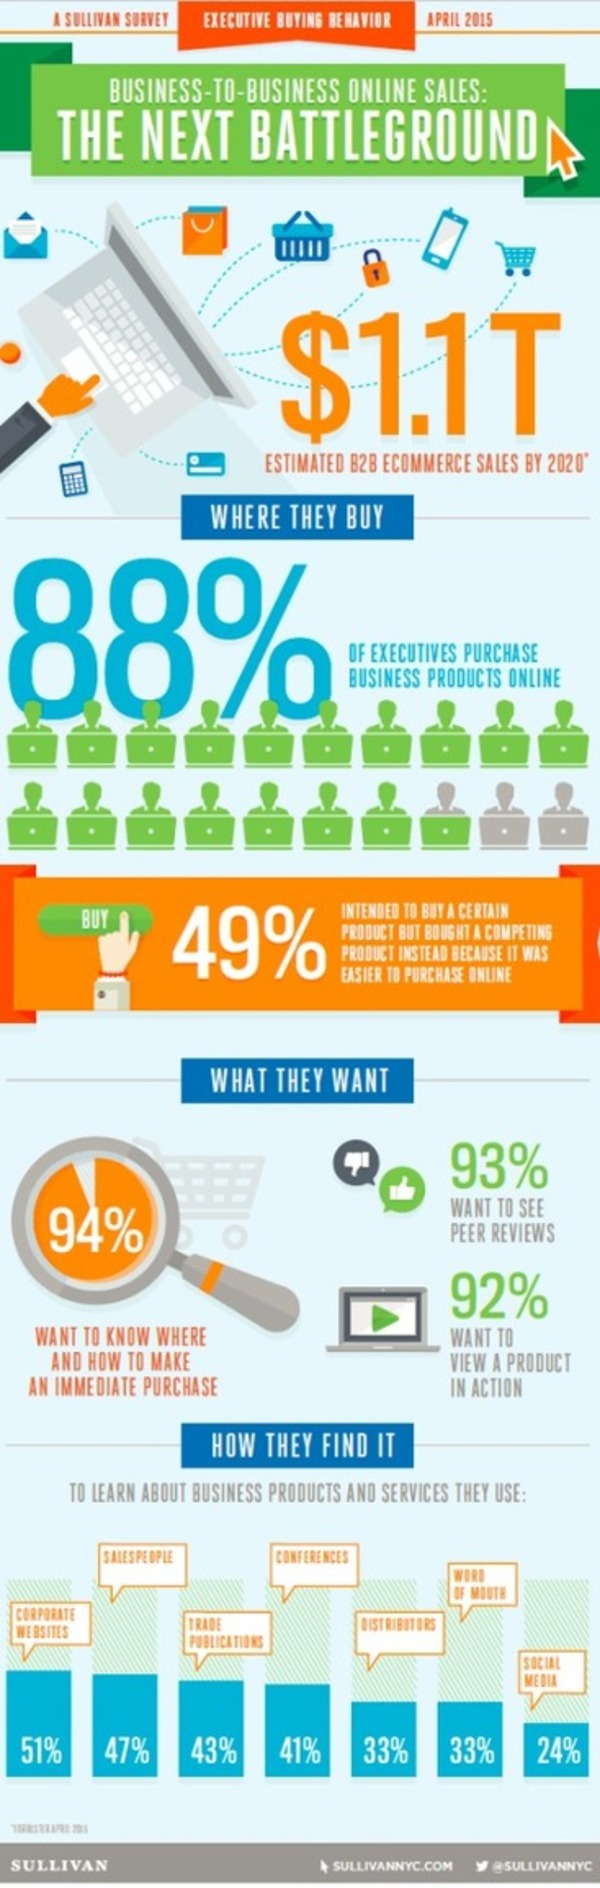 [Infographic] What Today's B2B Buyer Looks For When Making B2B Purchases Online - CMO.com | The Marketing Technology Alert | Scoop.it